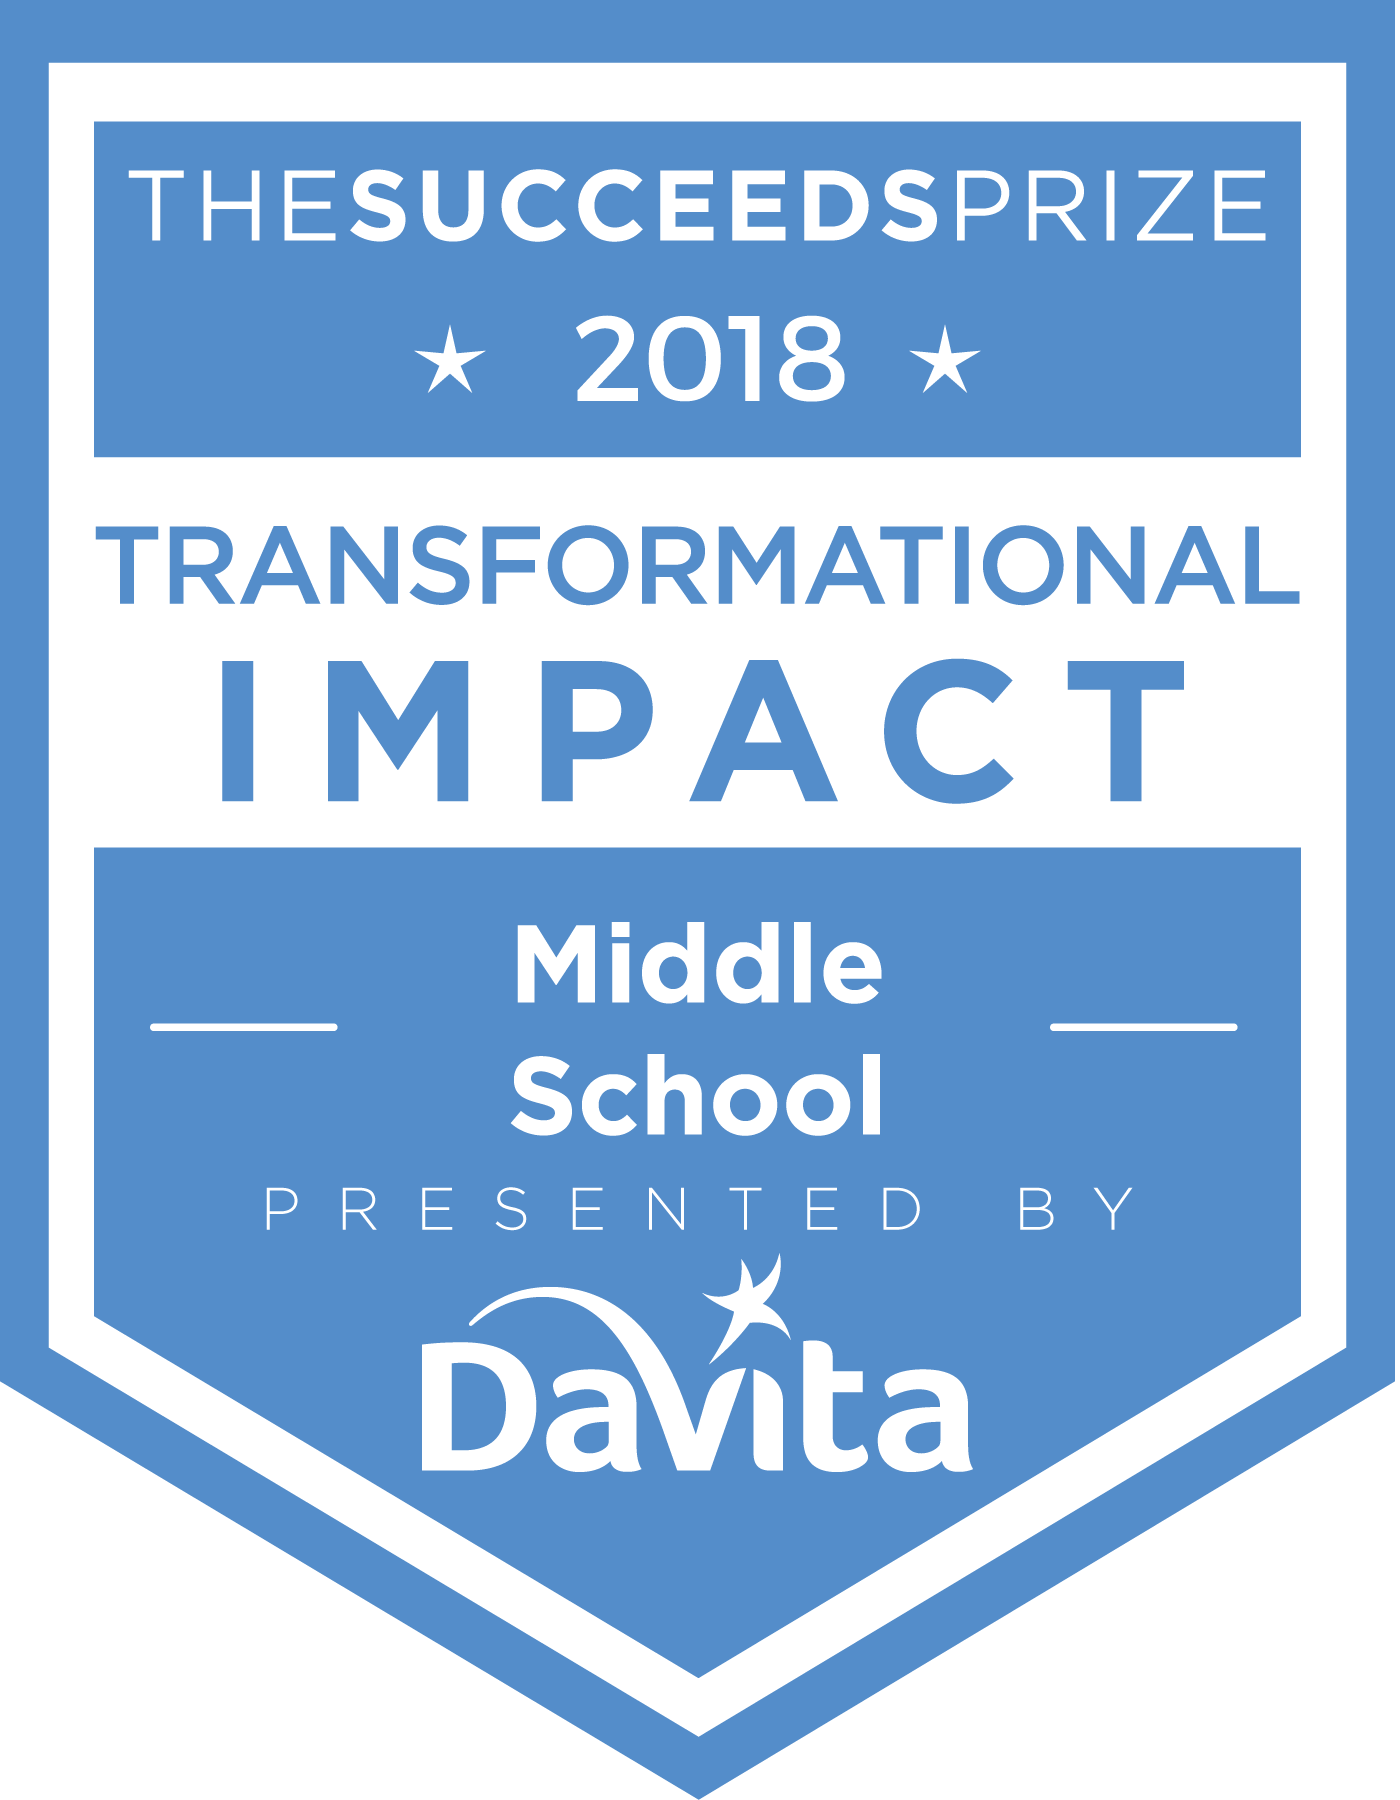 Transformational Impact in a Middle School (grades 6-8)